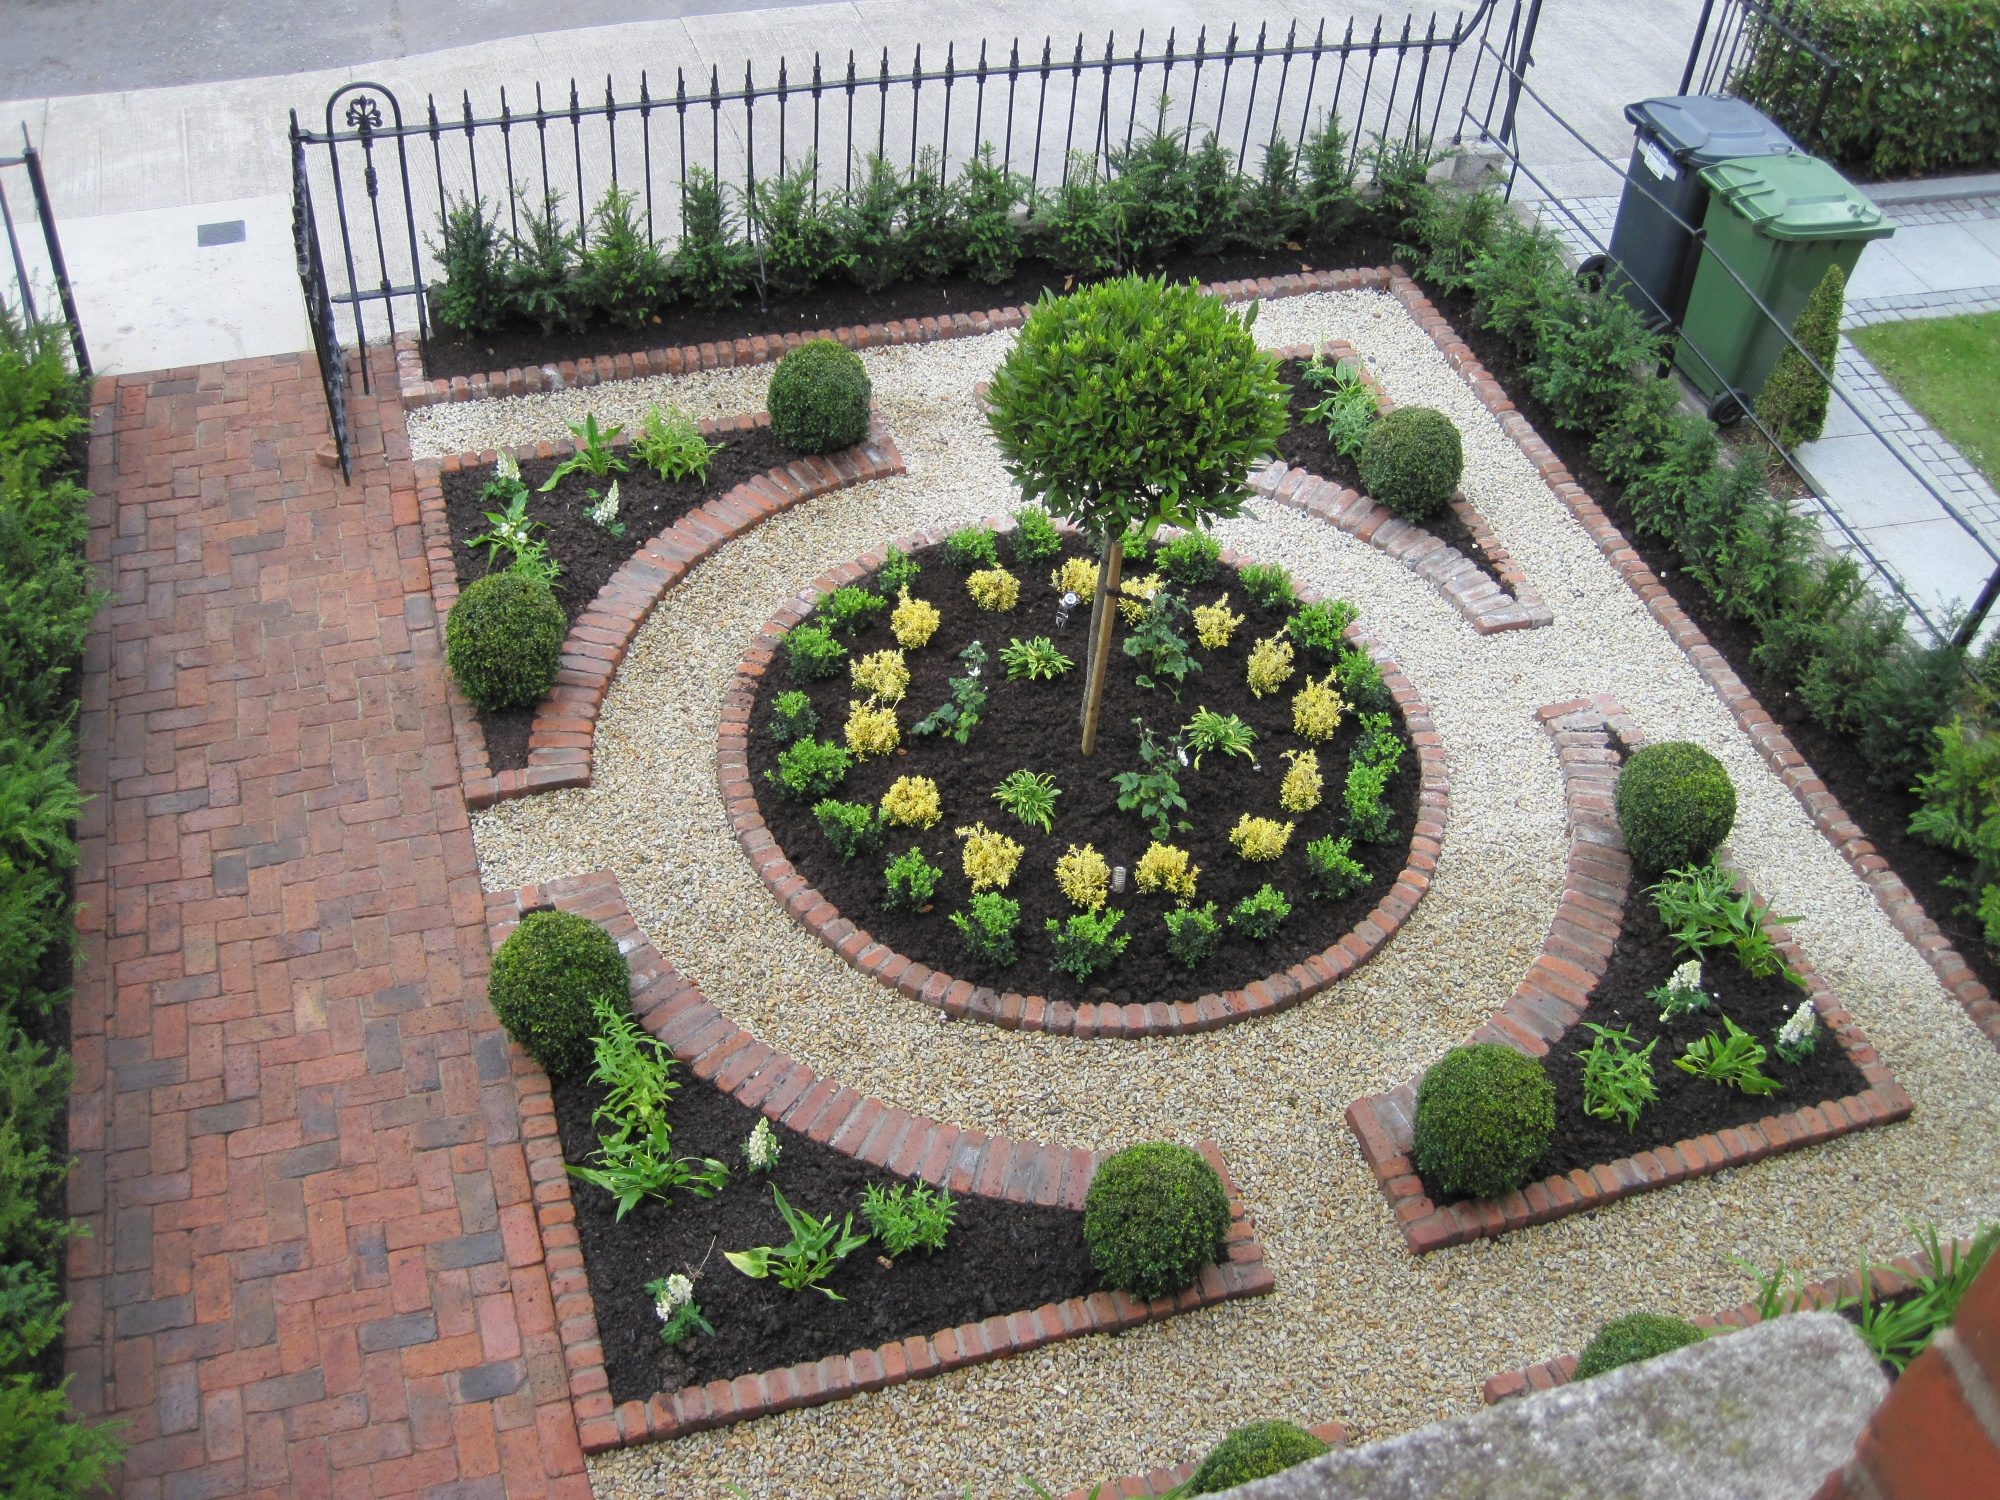 Garden design ideas inspiration advice for all styles for Garden layout ideas